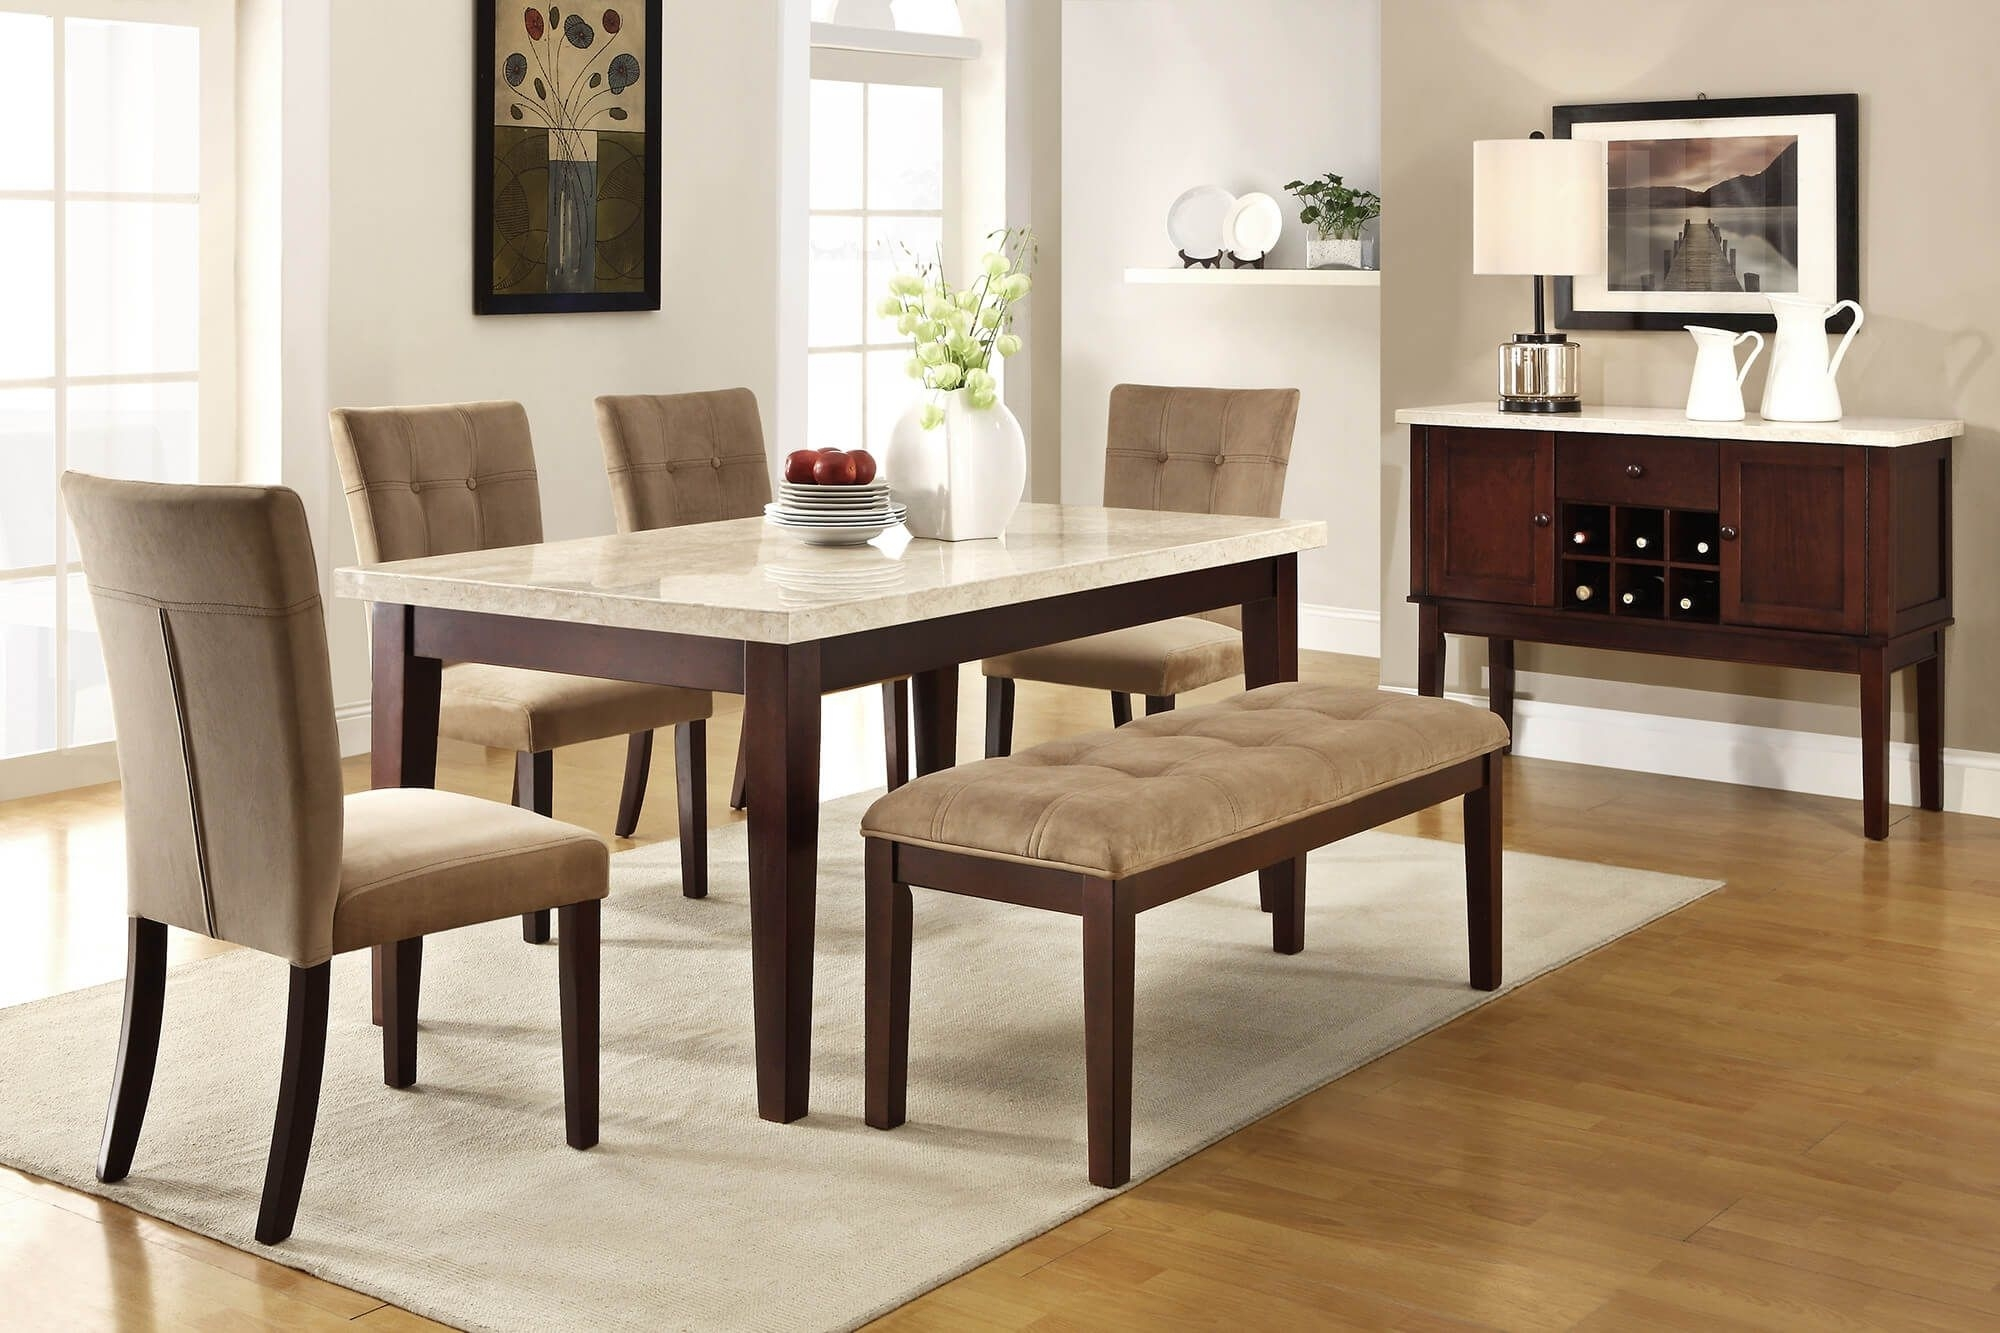 26 Dining Room Sets (Big And Small) With Bench Seating (2018) | Home Within Recent Delfina 7 Piece Dining Sets (Image 2 of 20)